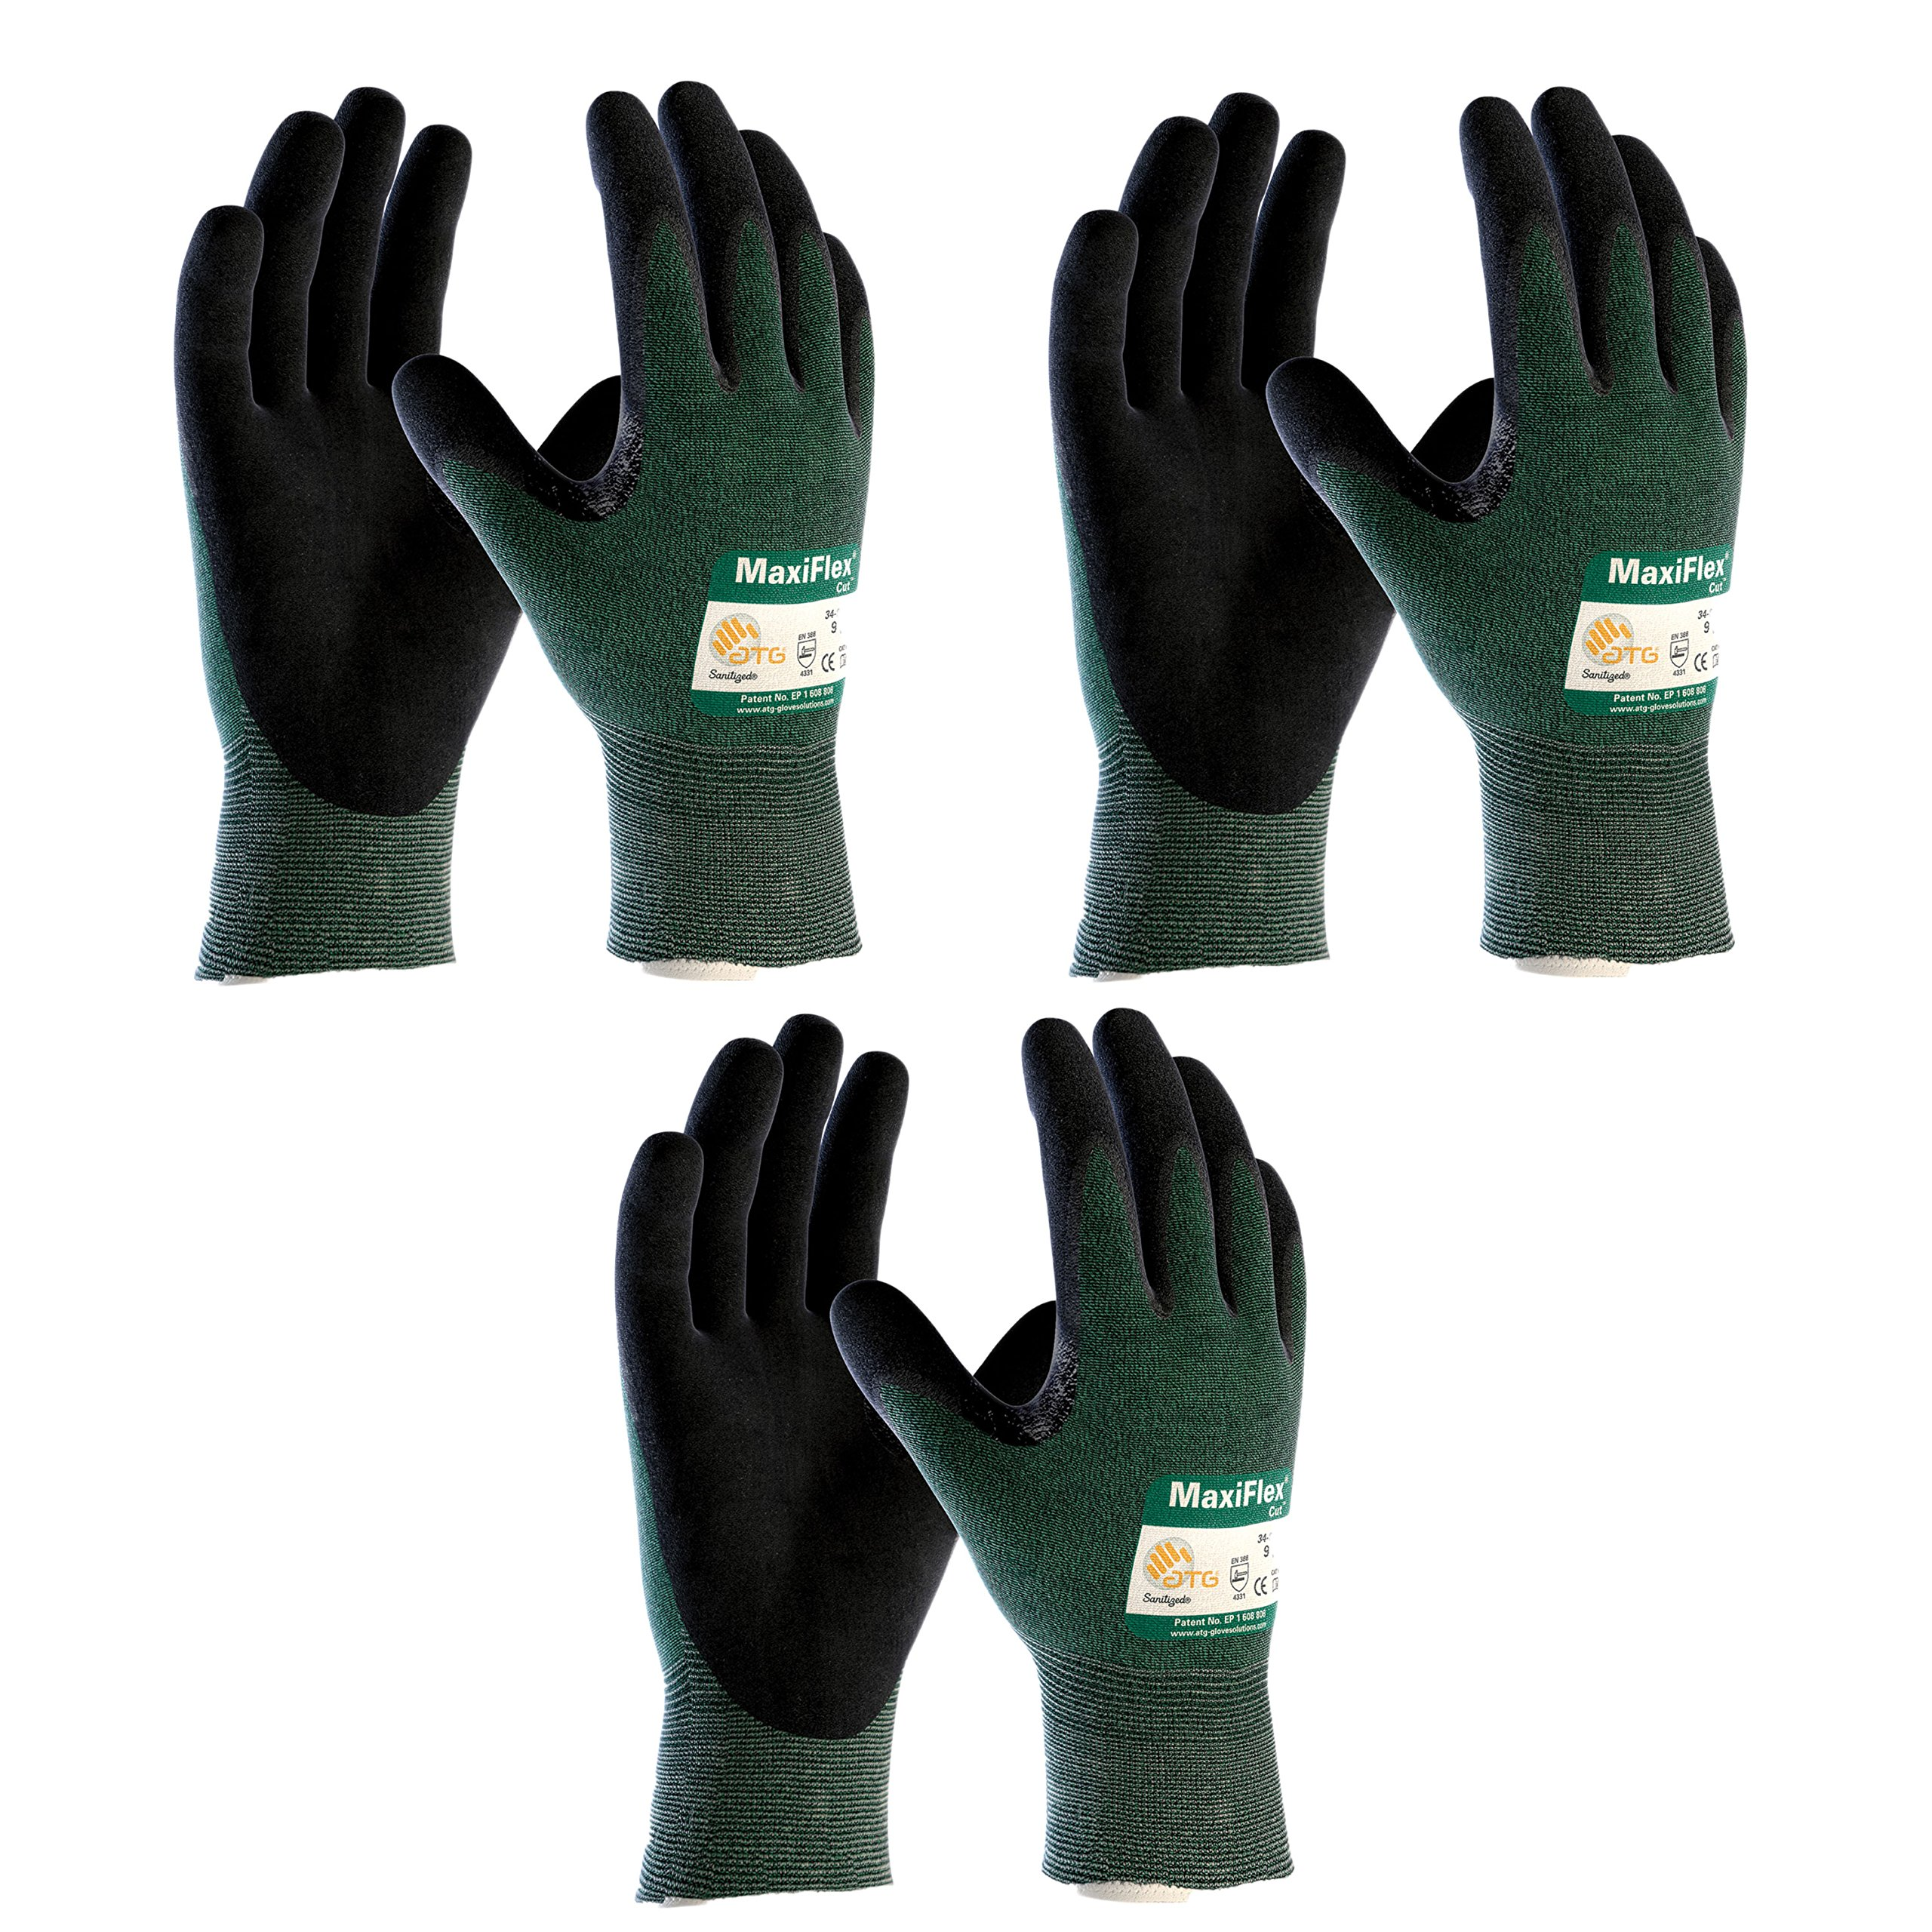 3 Pack MaxiFlex Cut 34-8743 Cut Resistant Nitrile Coated Work Gloves with Green Knit Shell and Premium Nitrile Coated Micro-Foam Grip on Palm & Fingers. Size (XX-Large) (3)